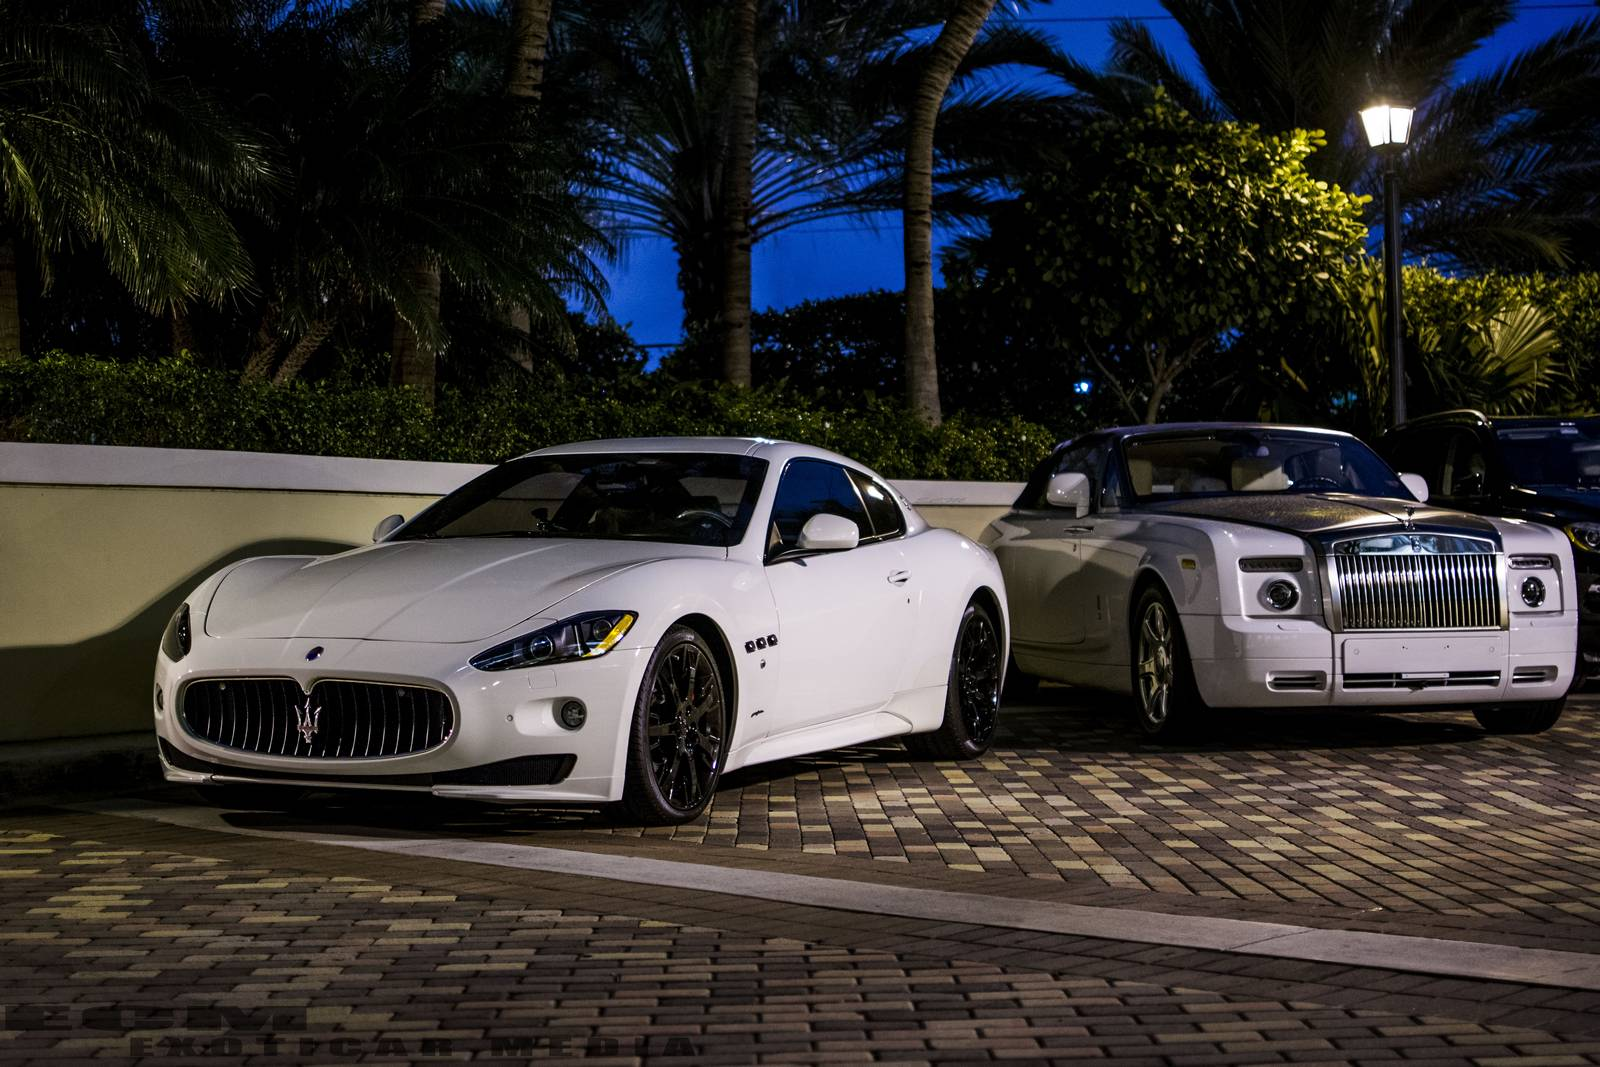 Spotting Supercars In Miami: Bal Harbour To South Beach